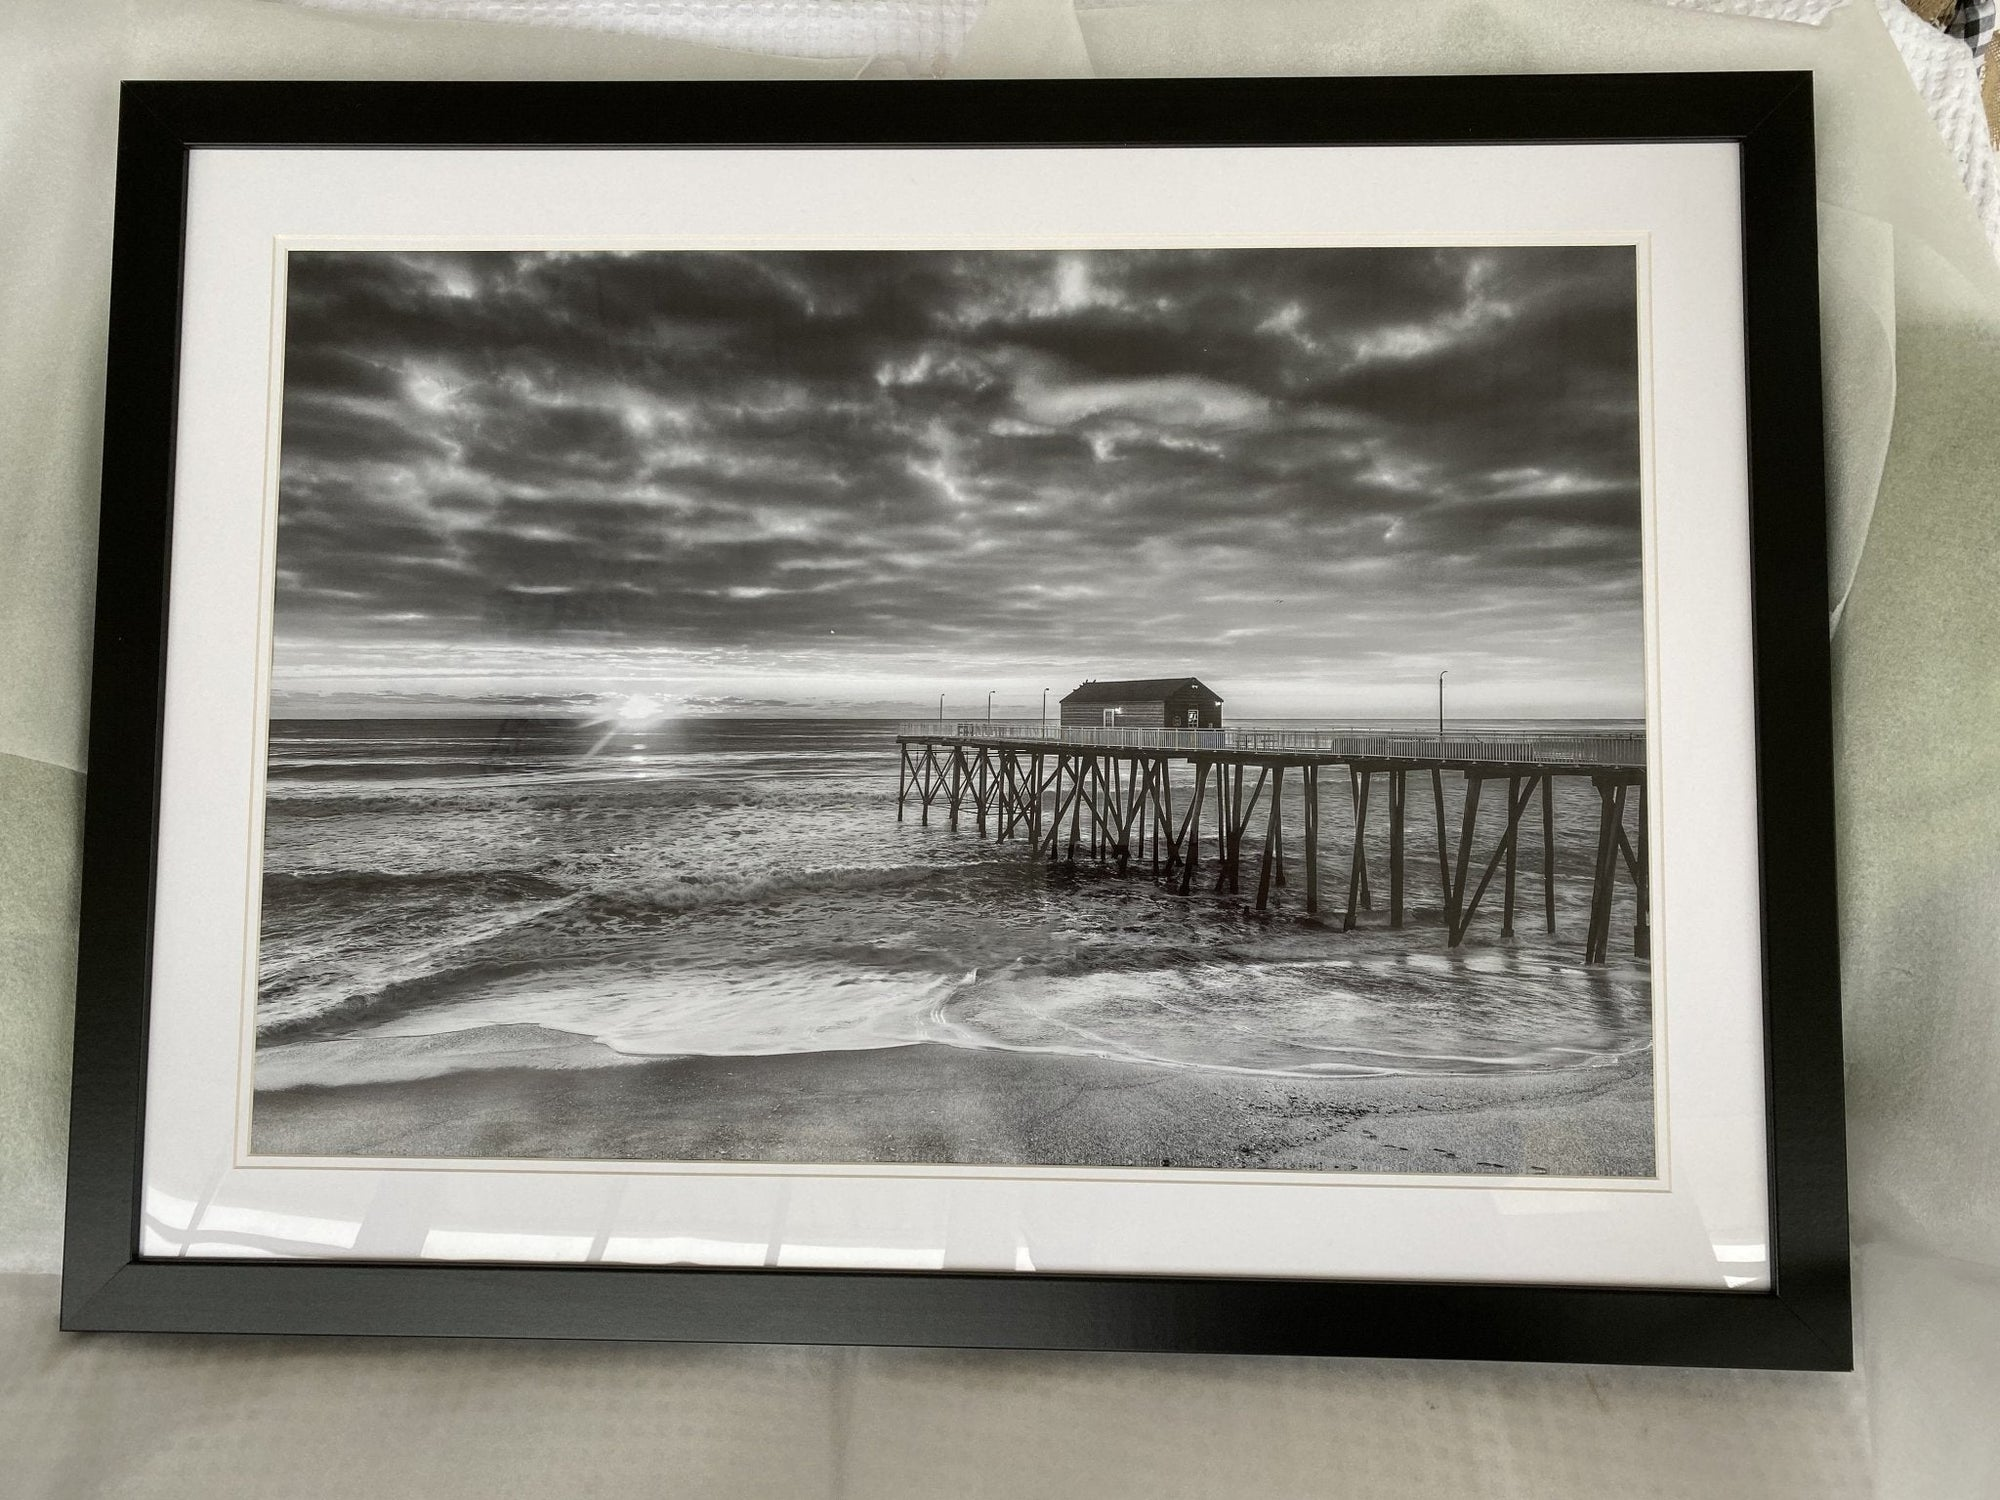 Belmar Fishing Pier sunrise Black & White 37 x 24 Black Frame - Bill McKim Photography -Jersey Shore whale watch tours